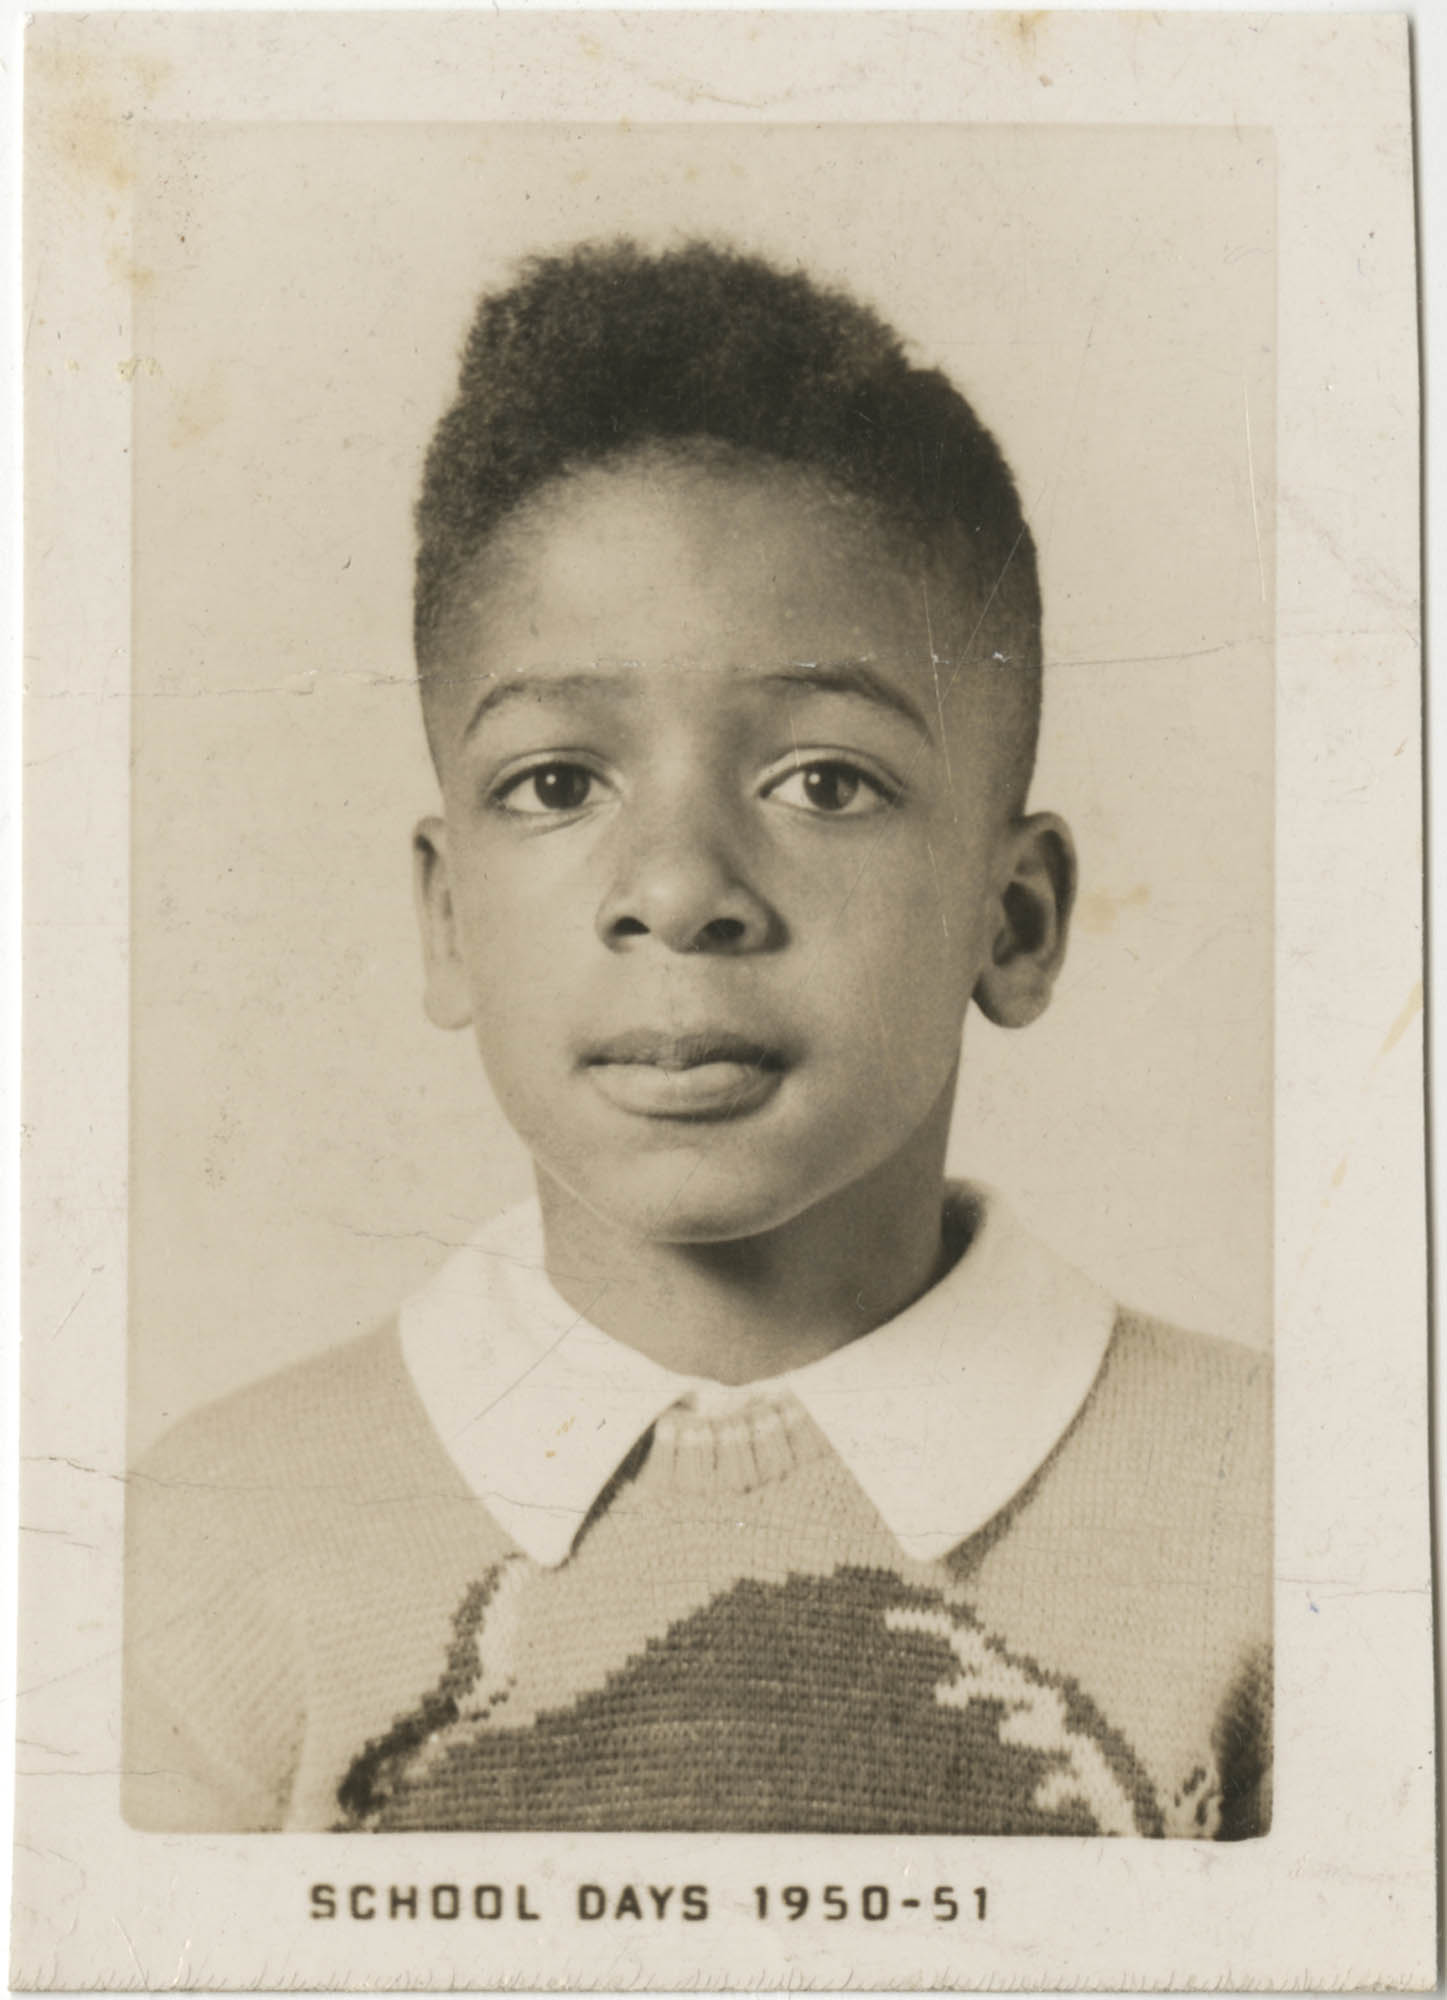 Photograph of Cleveland Sellers as a Boy, 1950-51